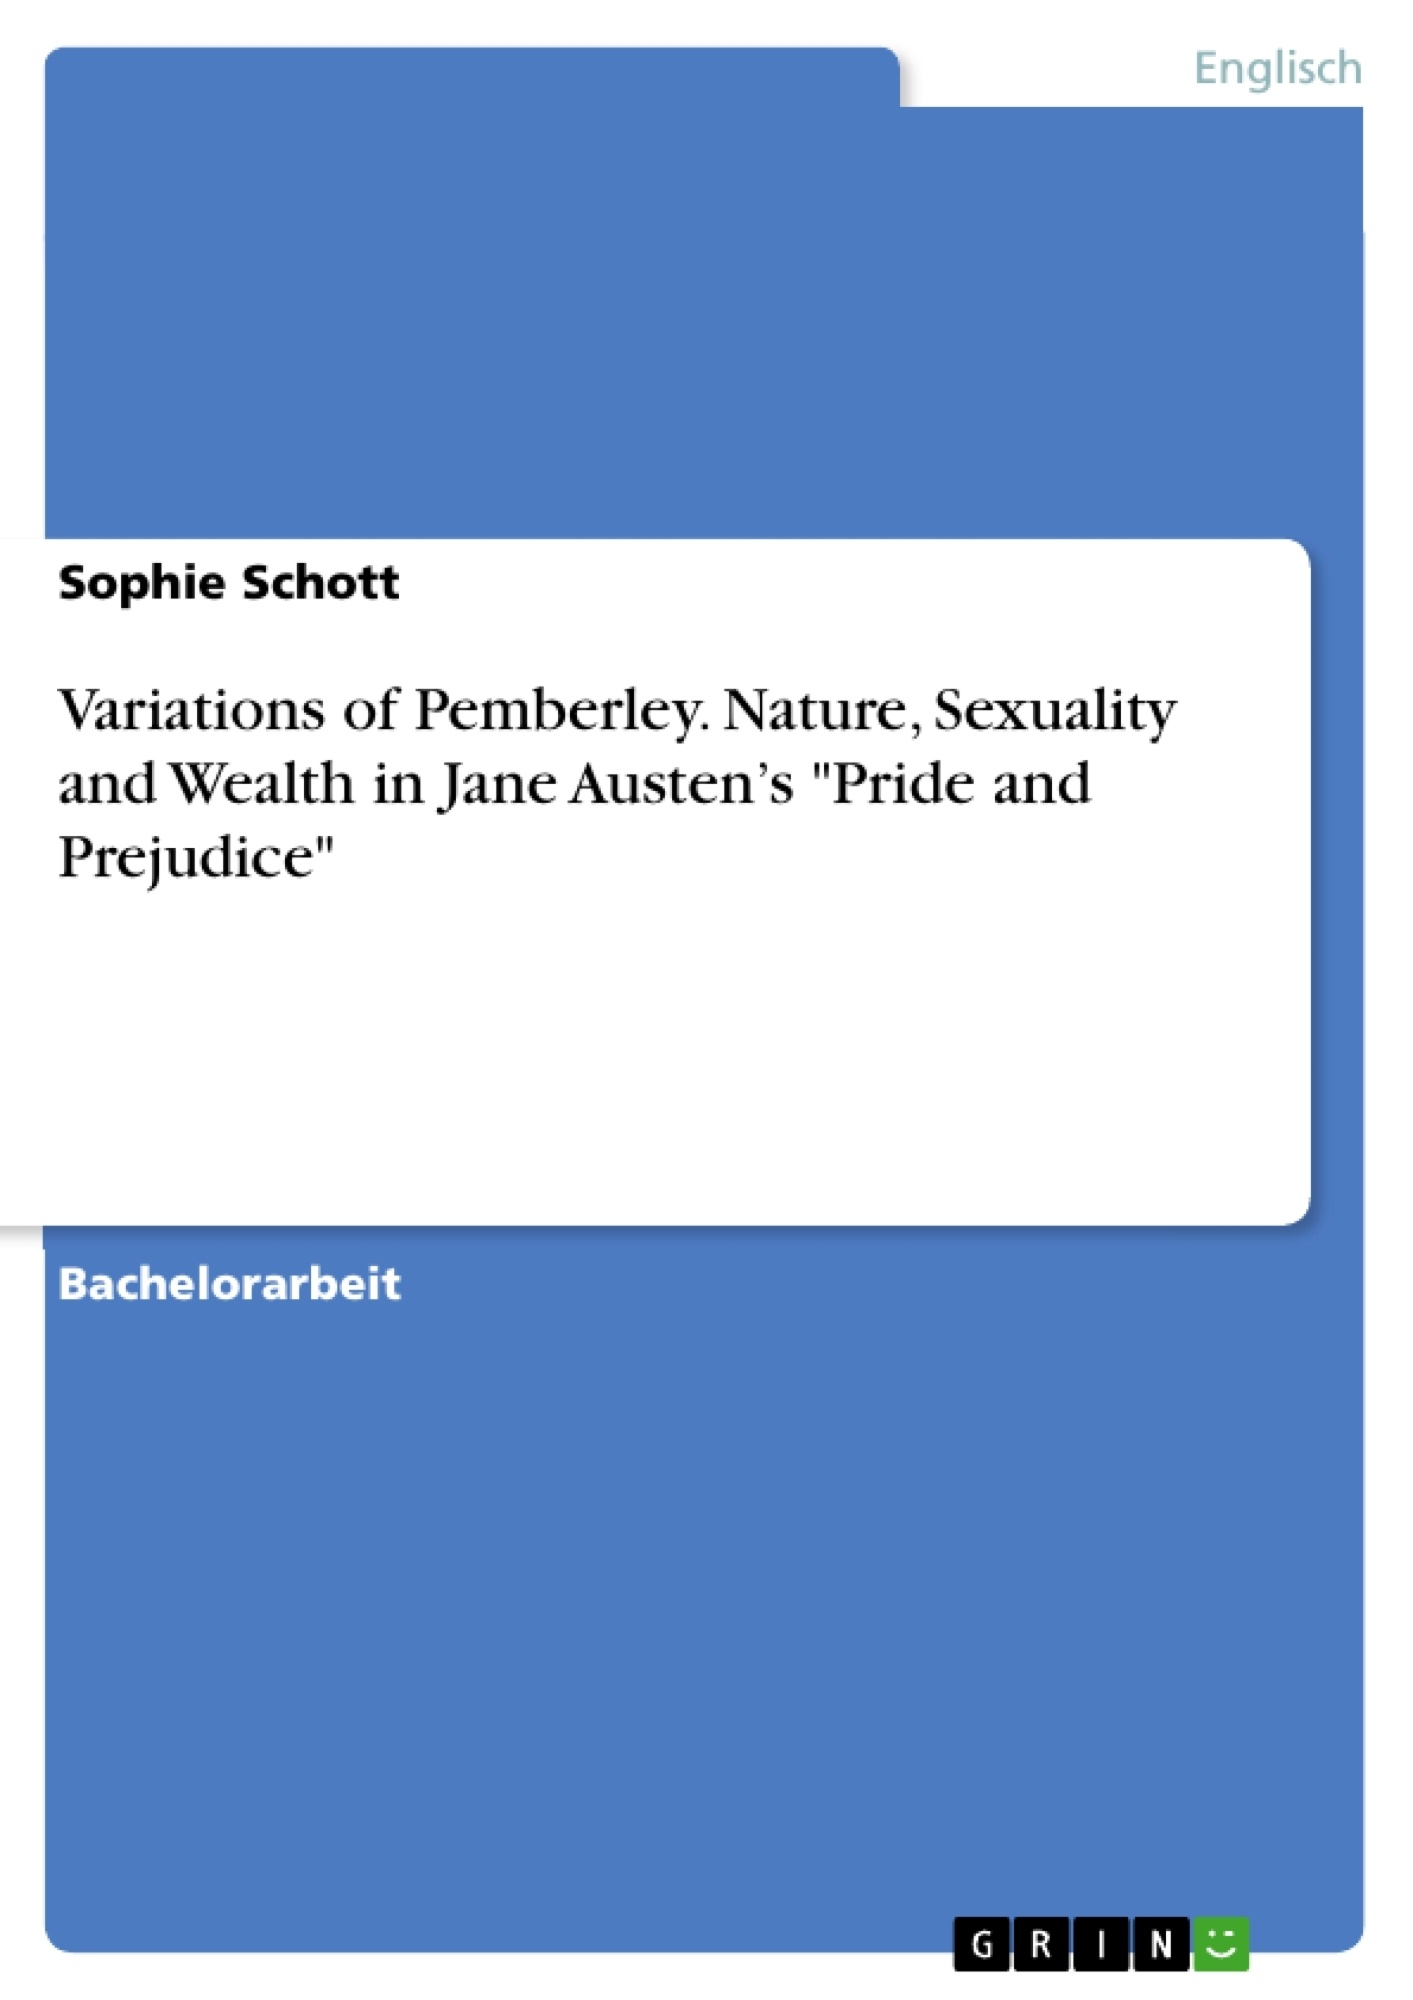 GRIN - Variations of Pemberley  Nature, Sexuality and Wealth in Jane  Austen's